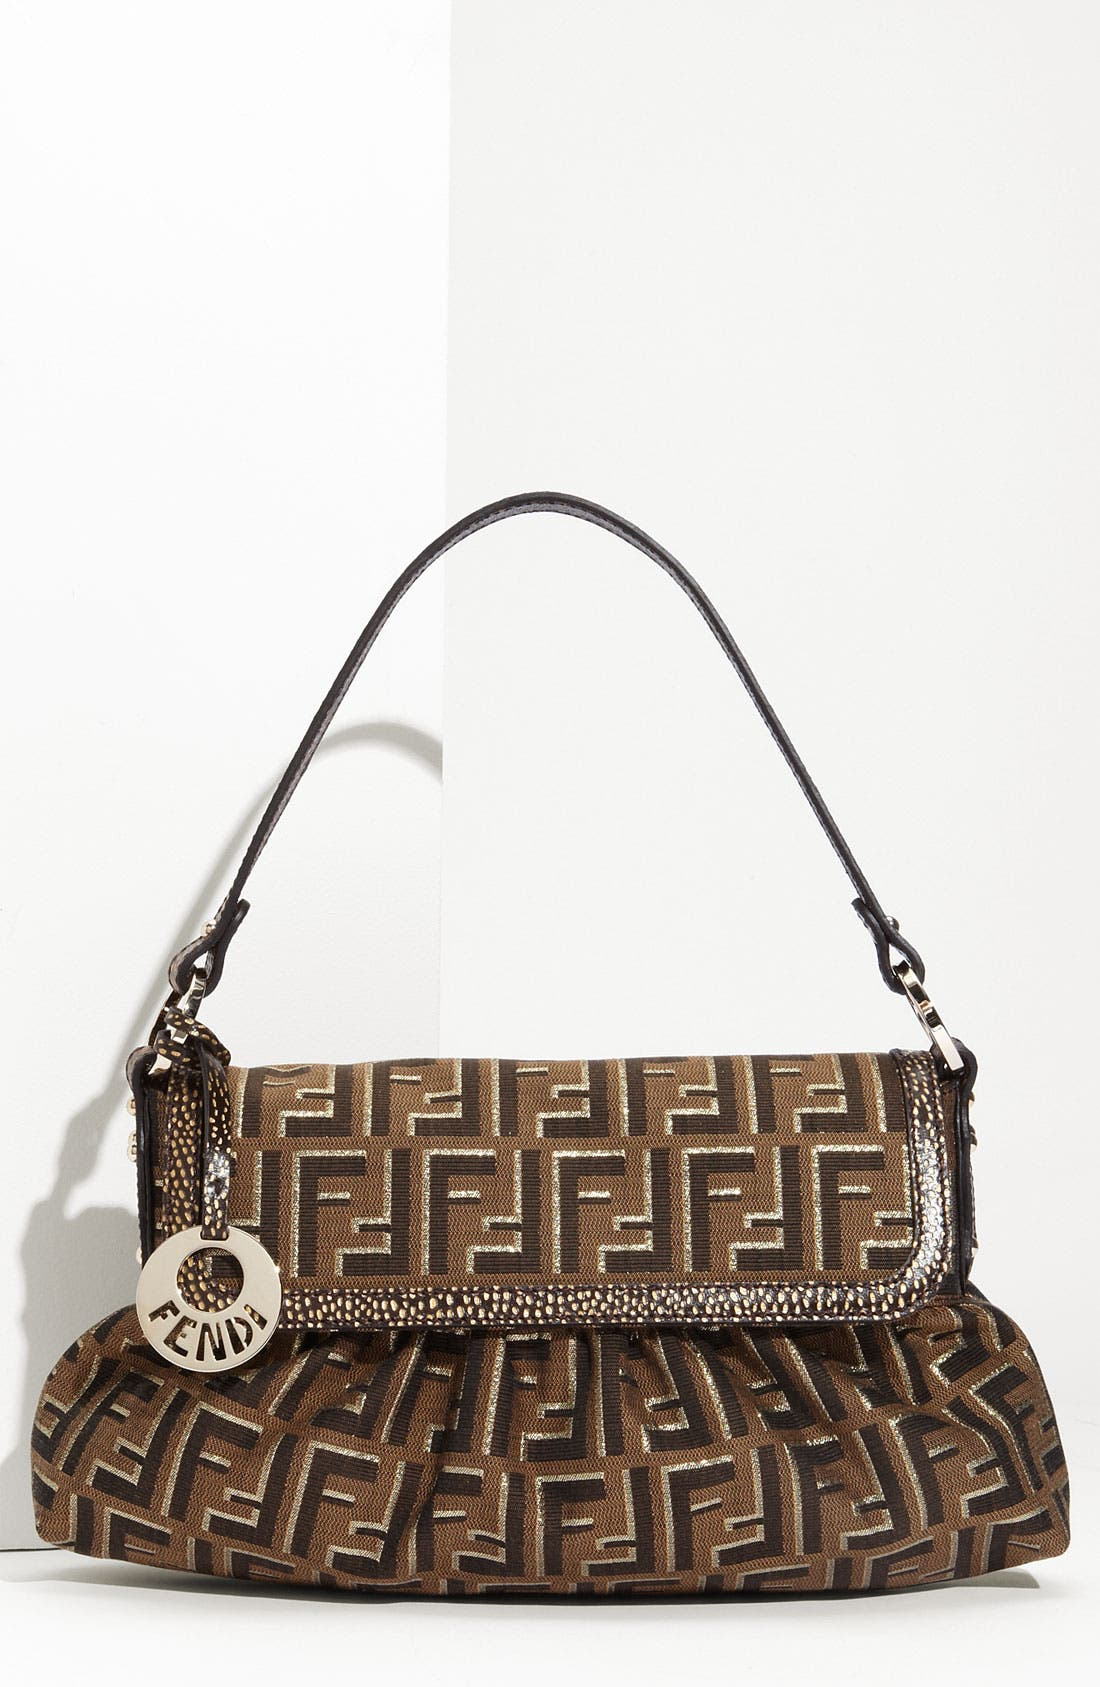 Alternate Image 1 Selected - Fendi 'Chef - Ombra' Flap Bag